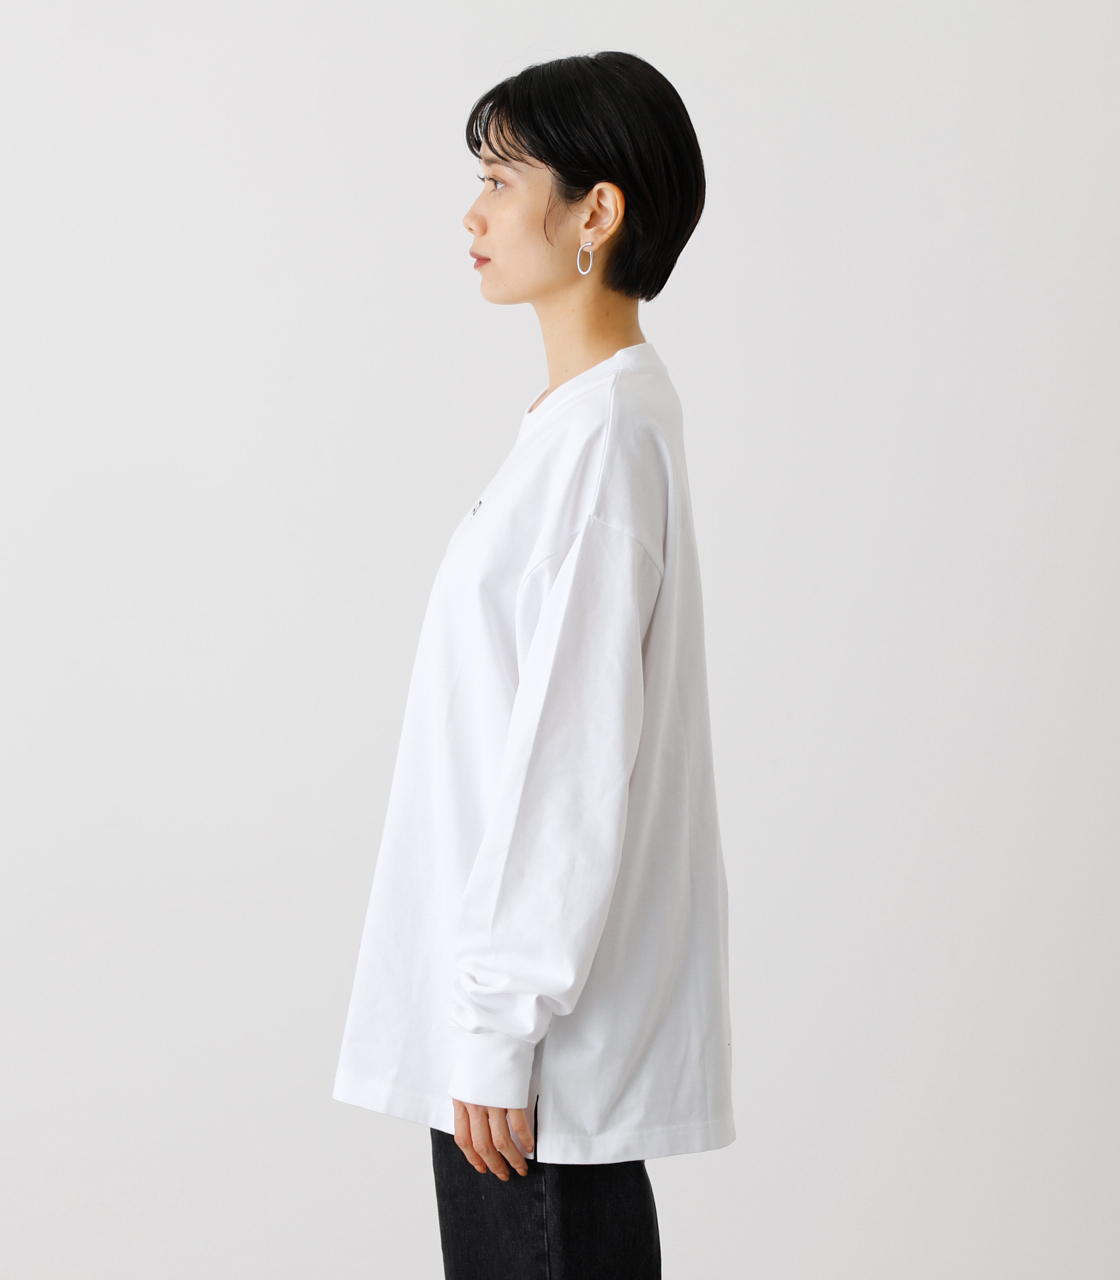 ONS SIMPLE LOGO TEE/ONSシンプルロゴTシャツ 詳細画像 WHT 6